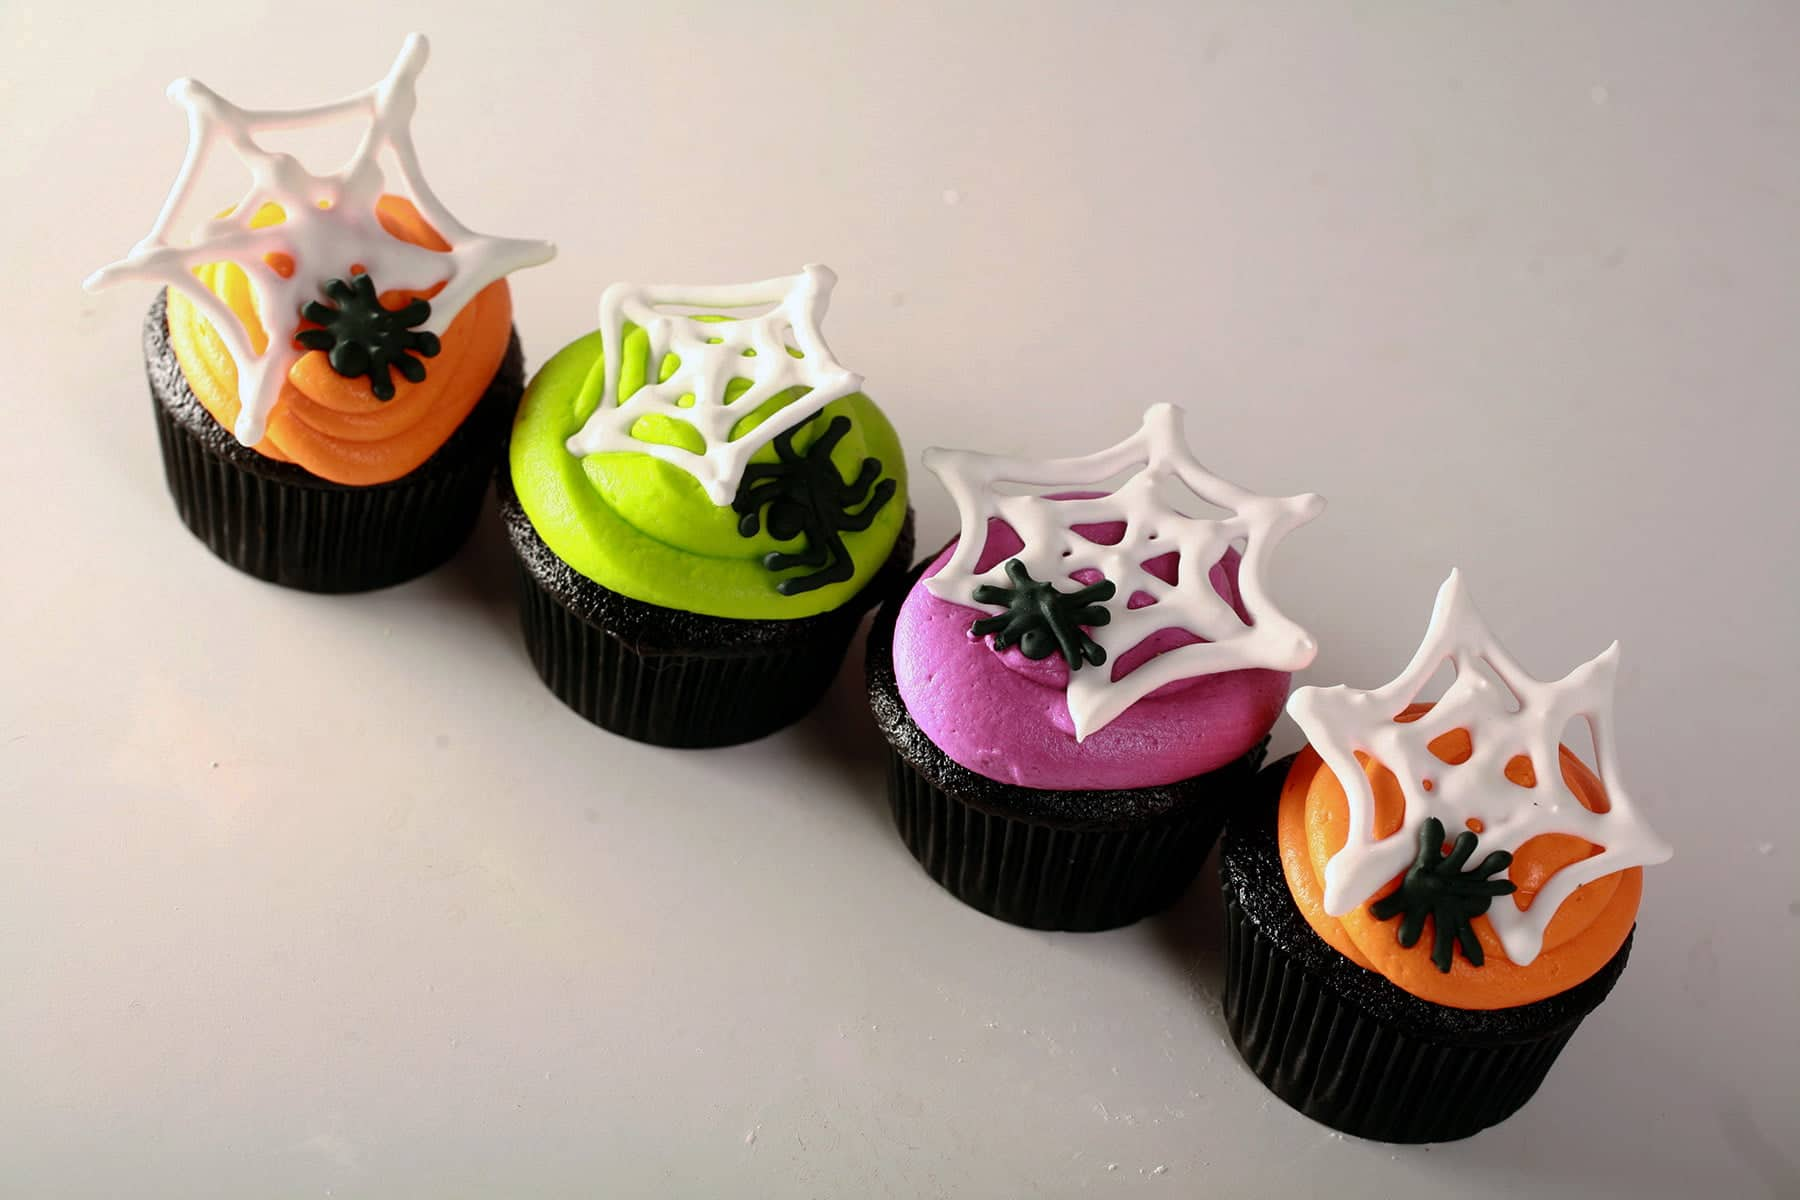 4 black velvet Halloween cupcakes frosted with brightly coloured icing - lime green, electric purple, and orange - are shown topped with royal icing spider webs and spiders.